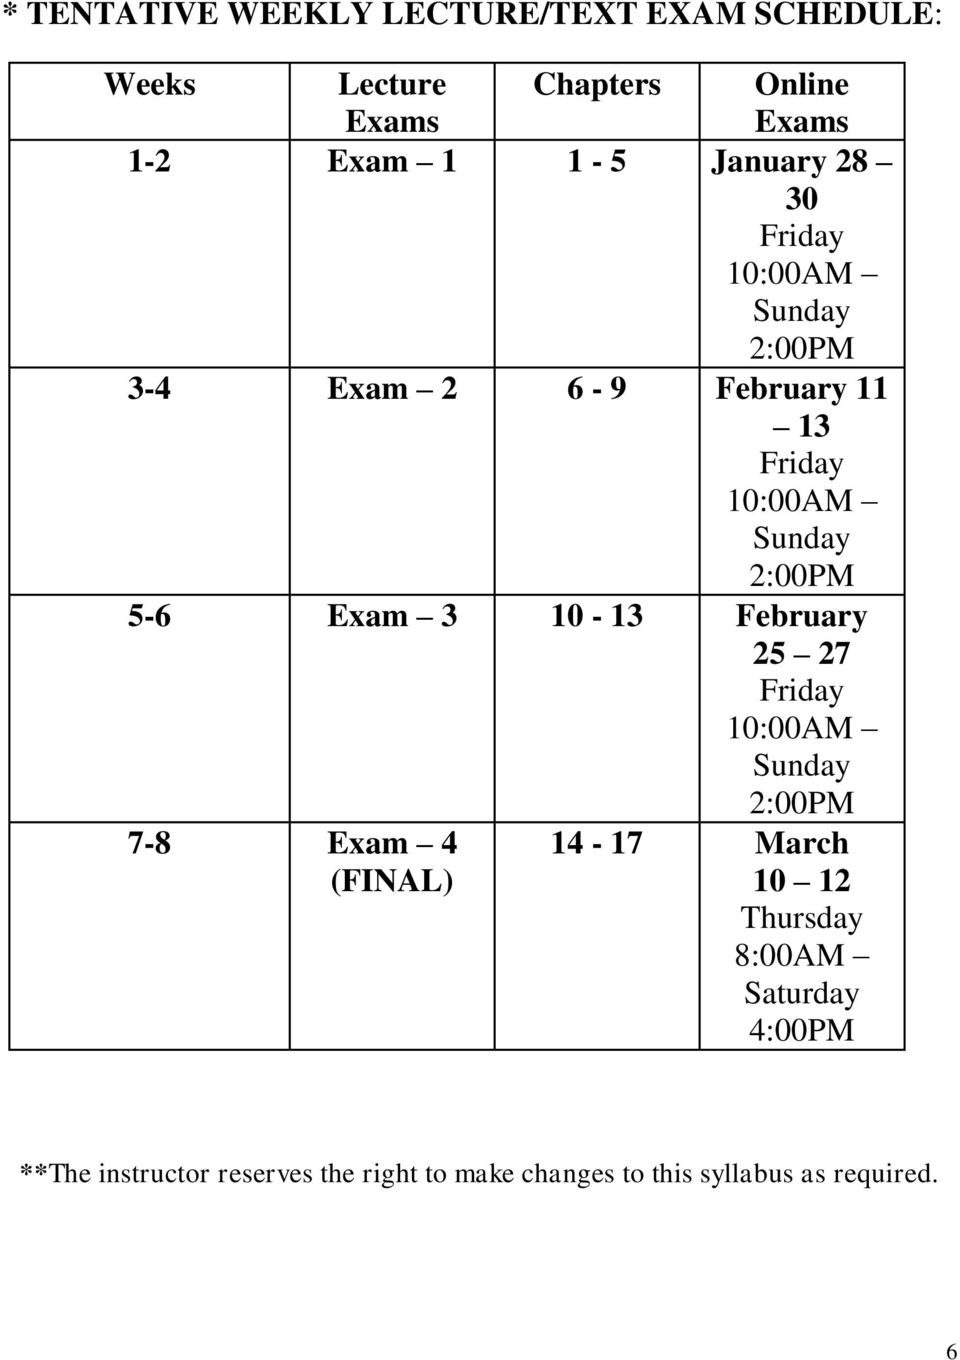 5-6 Exam 3 10-13 February 25 27 Friday 10:00AM Sunday 2:00PM 7-8 Exam 4 (FINAL) 14-17 March 10 12